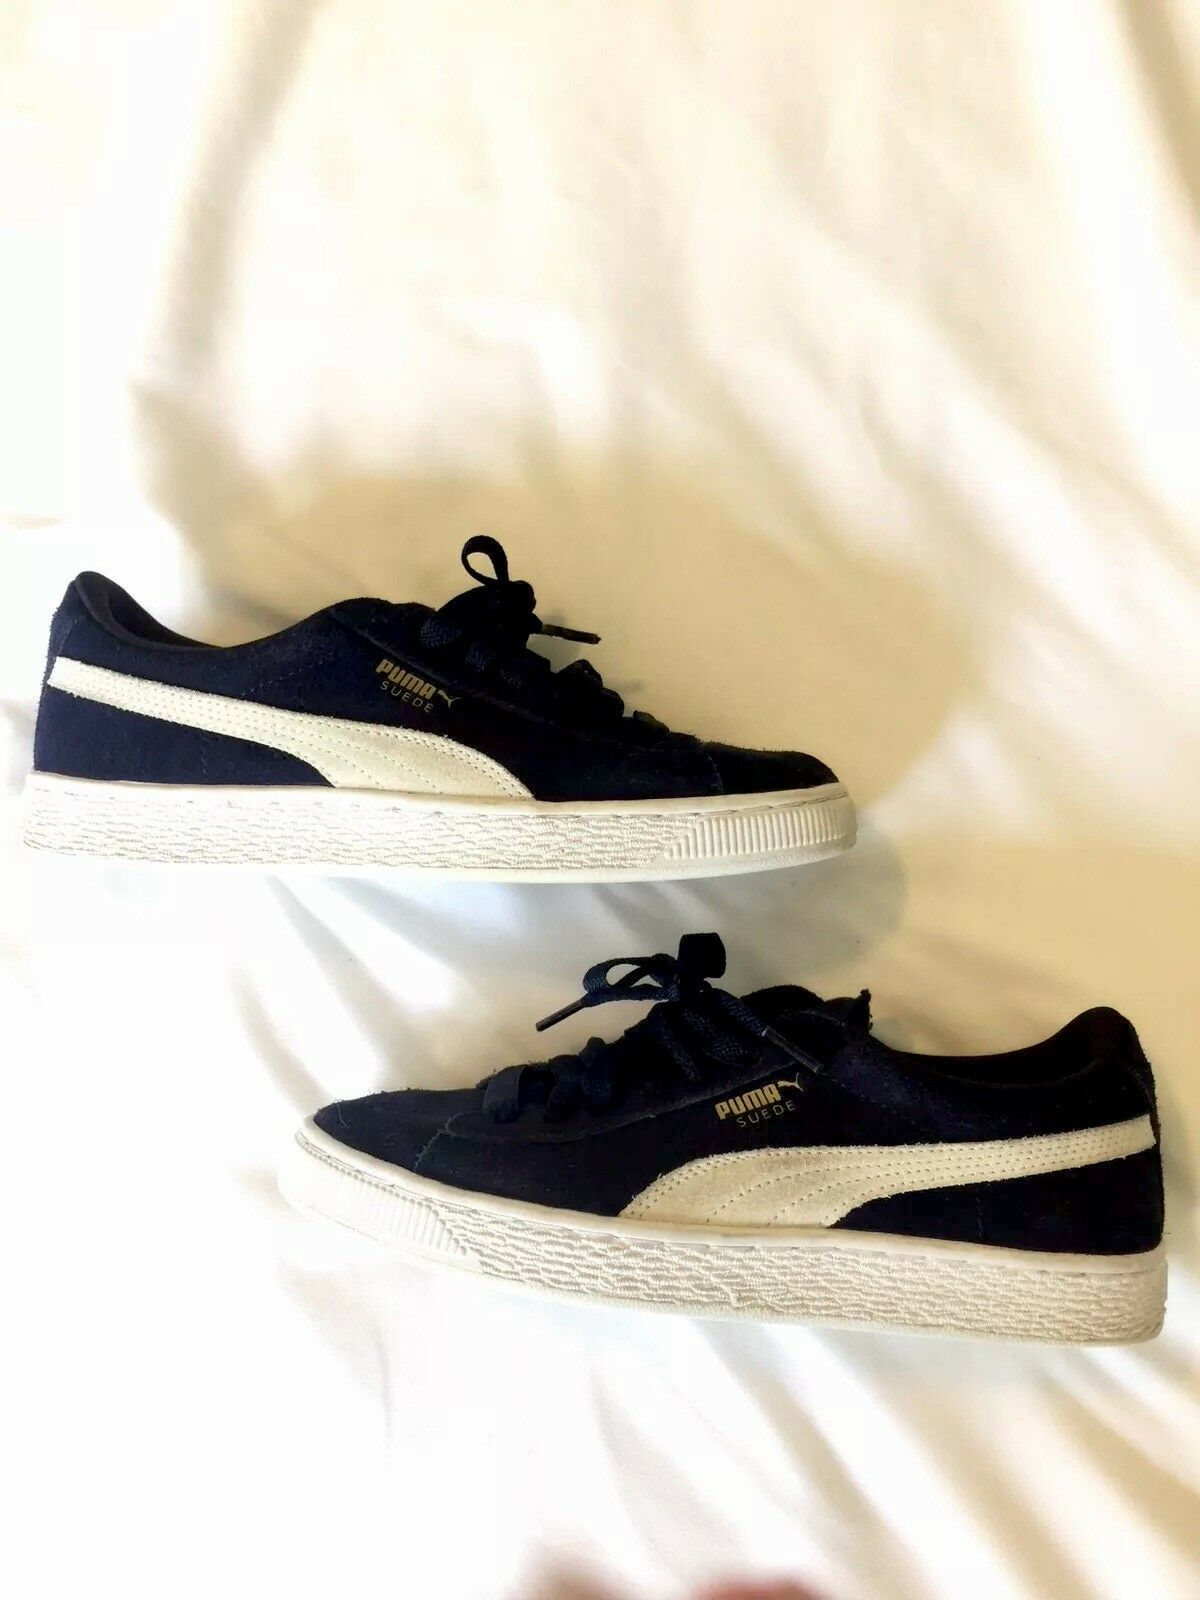 PUMA SUEDE CLASSIC NAVY PEACOAT/WHITE MEN'S US SIZE 6.5 Comfortable and good-looking